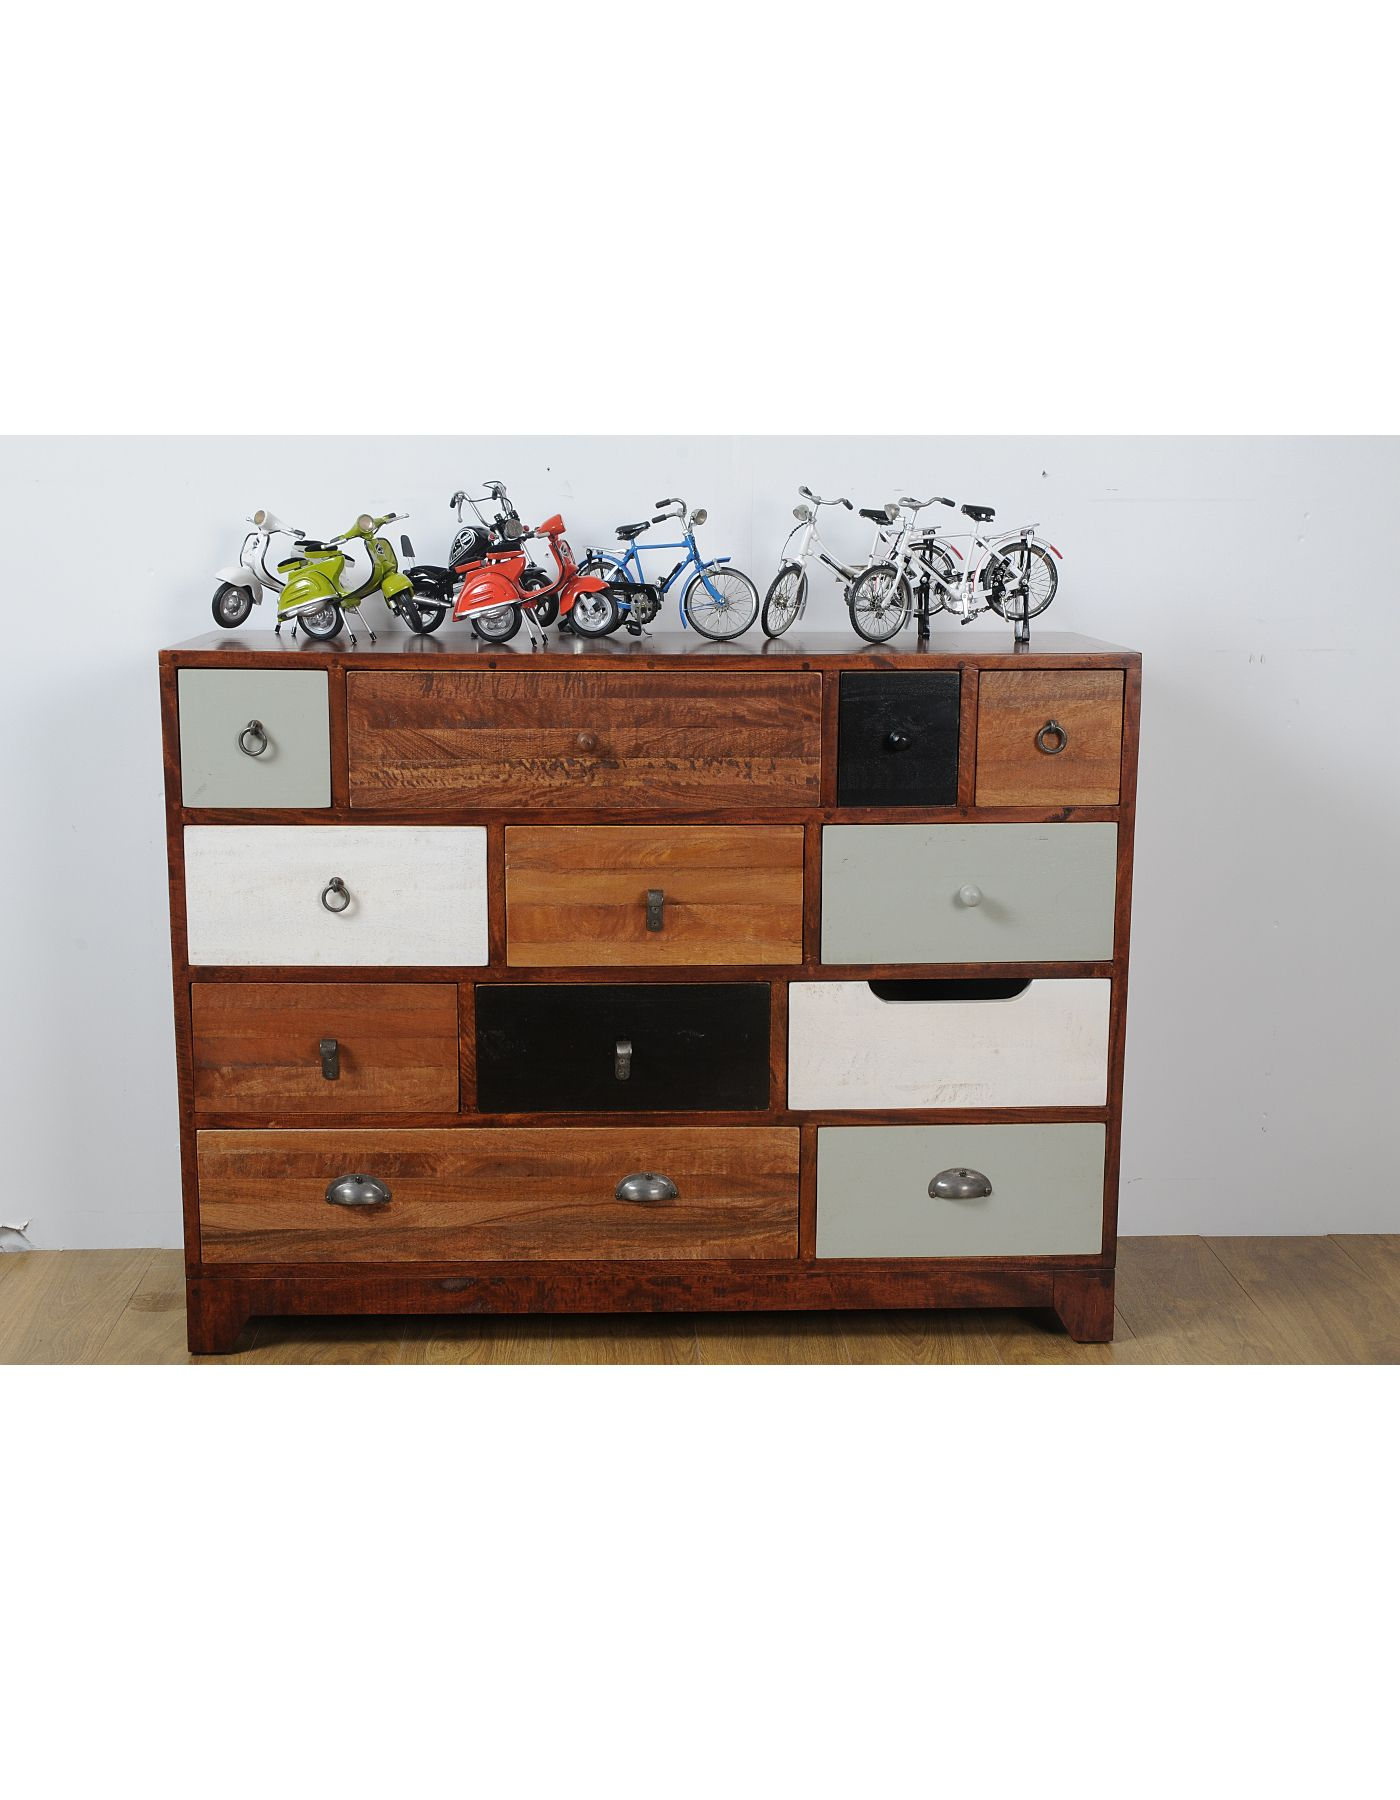 12 Drawer Chest Of Drawers Rye 12 Drawer Chest Of Drawers Multicoloured Chest Of Drawers